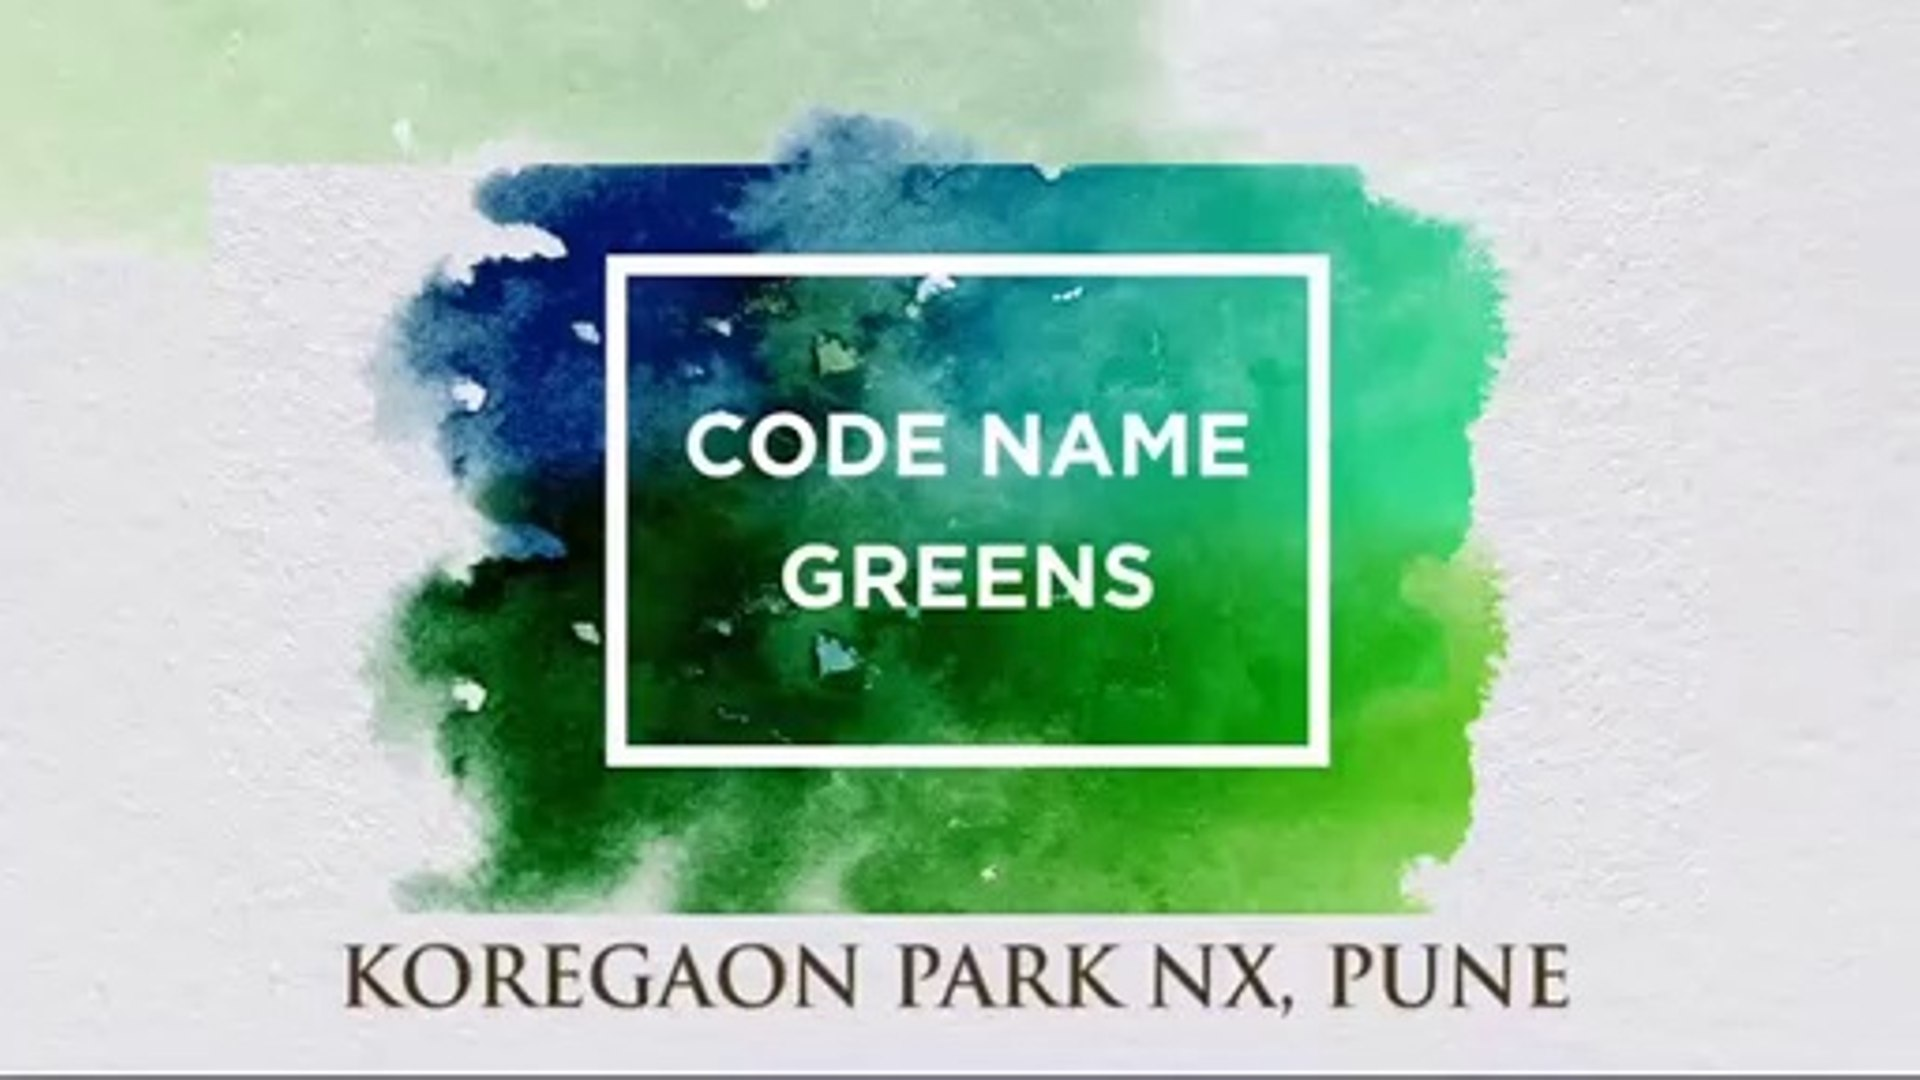 Adani Koregaon Park NX, Adani Realty, Adani project in Pune, Pune new launches, Adani sets footprint in Pune, Pune real estate, Pune property market, Investment in Pune, India real estate news, Indian realty news, Real estate news India, Investment in property, Track2Realty